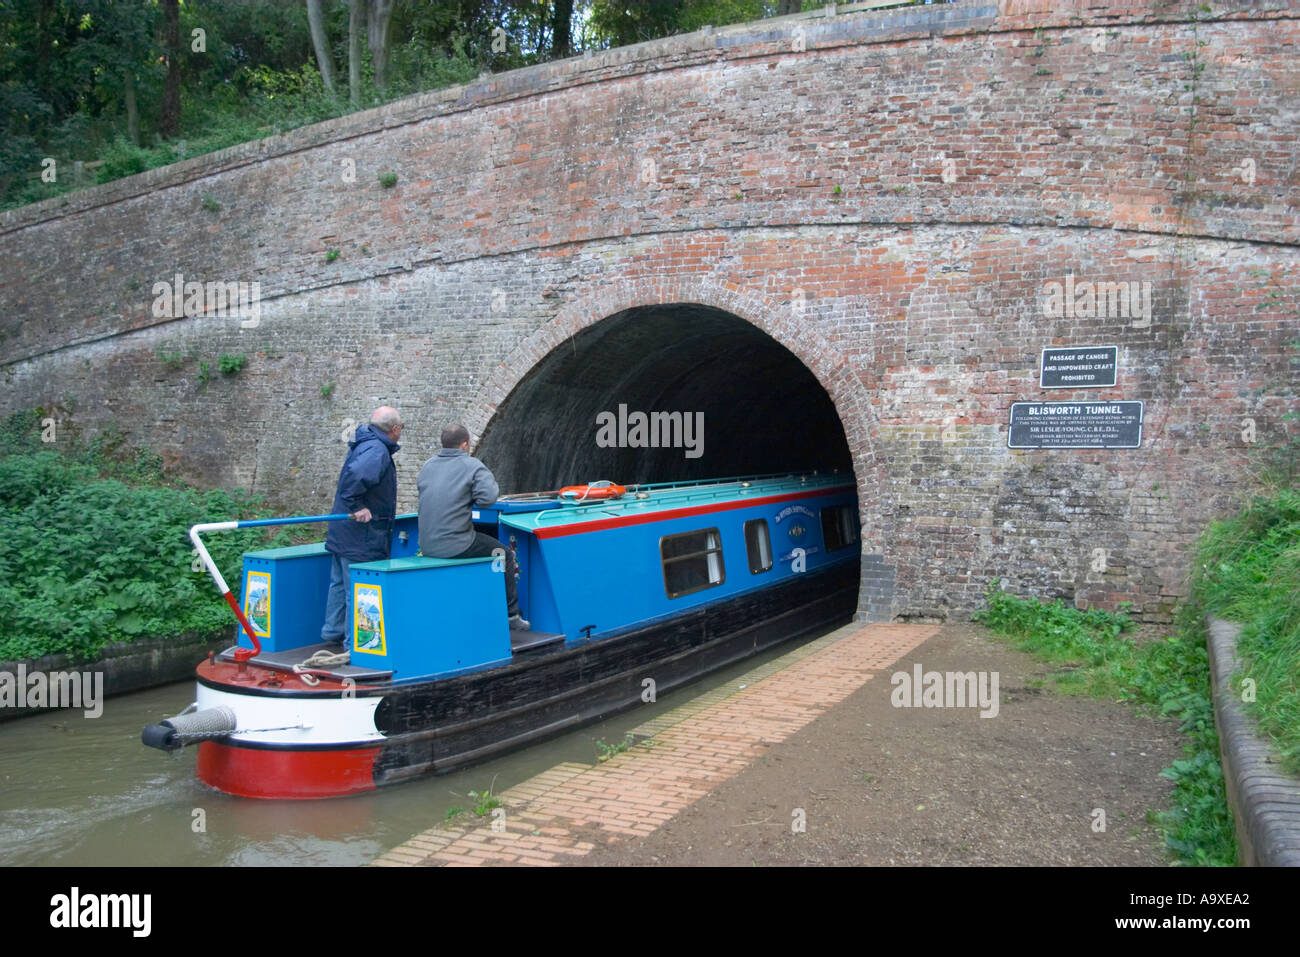 A boat going into the entrance of Blisworth Tunnel near Stoke Bruerne on the Grand Union Canal England - Stock Image